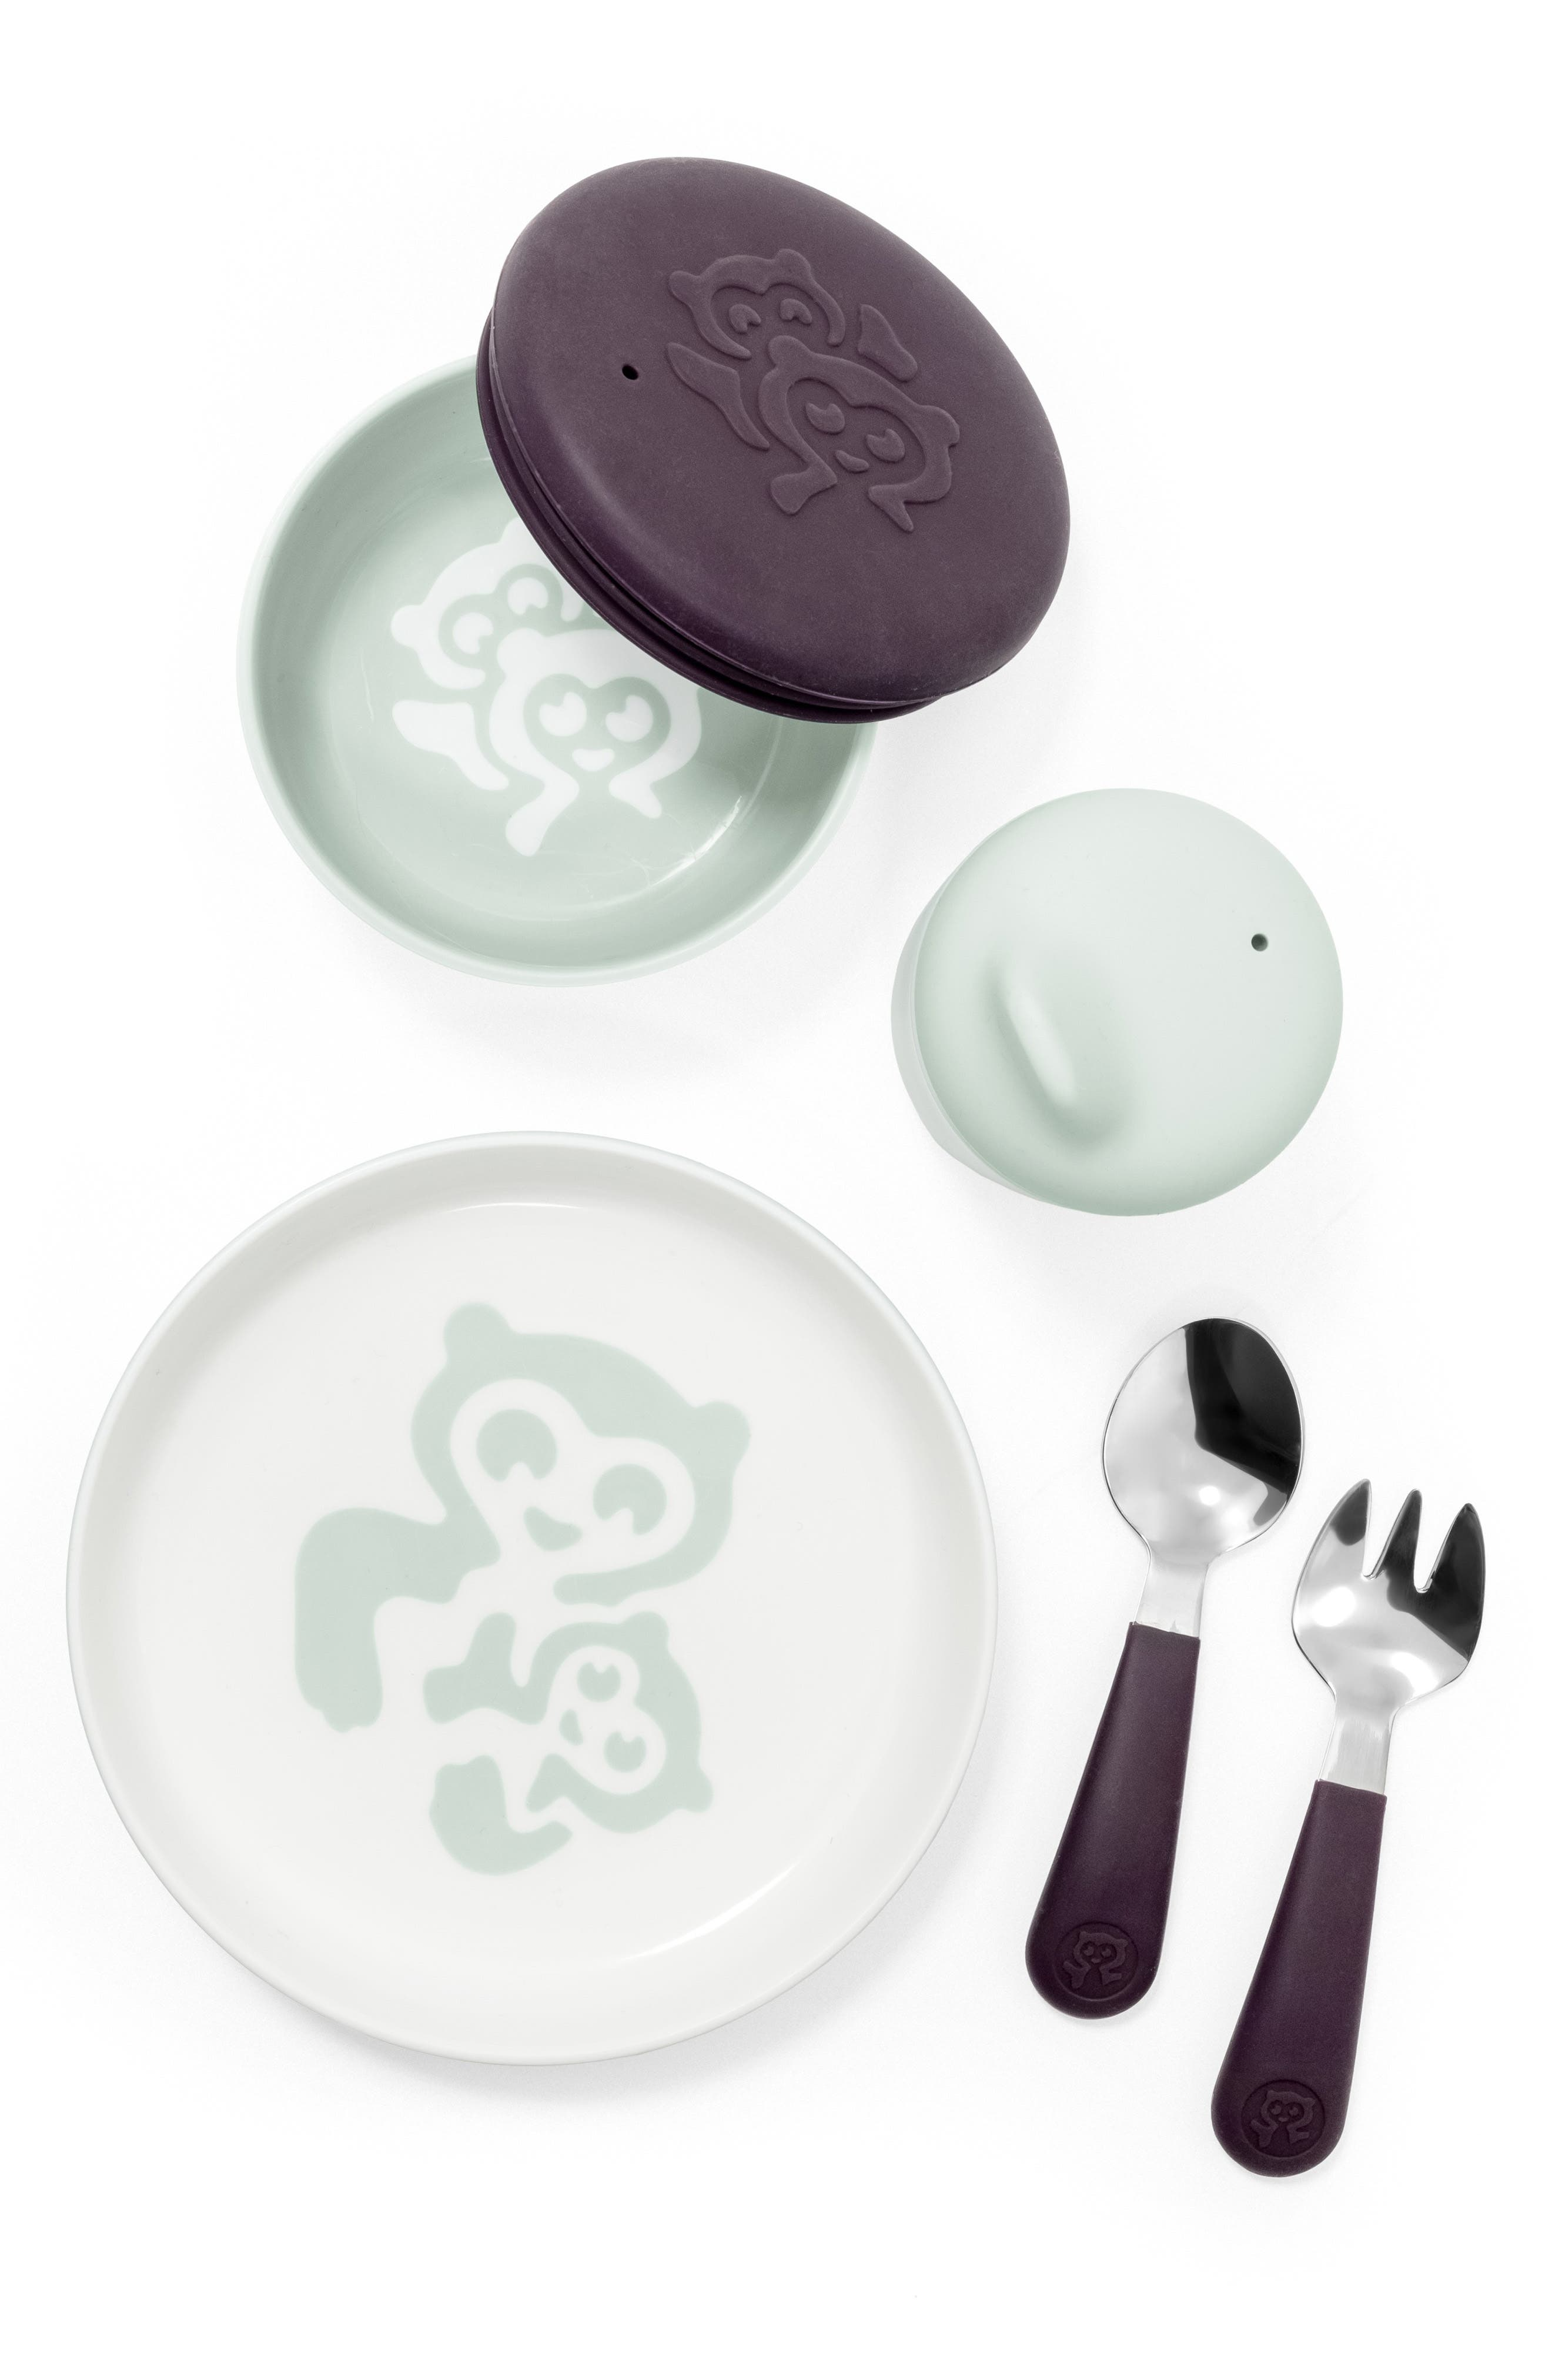 Infant Stokke Munch Complete Lidded Bowl Sippy Cup Plate Fork  Spoon Set Size One Size  Green